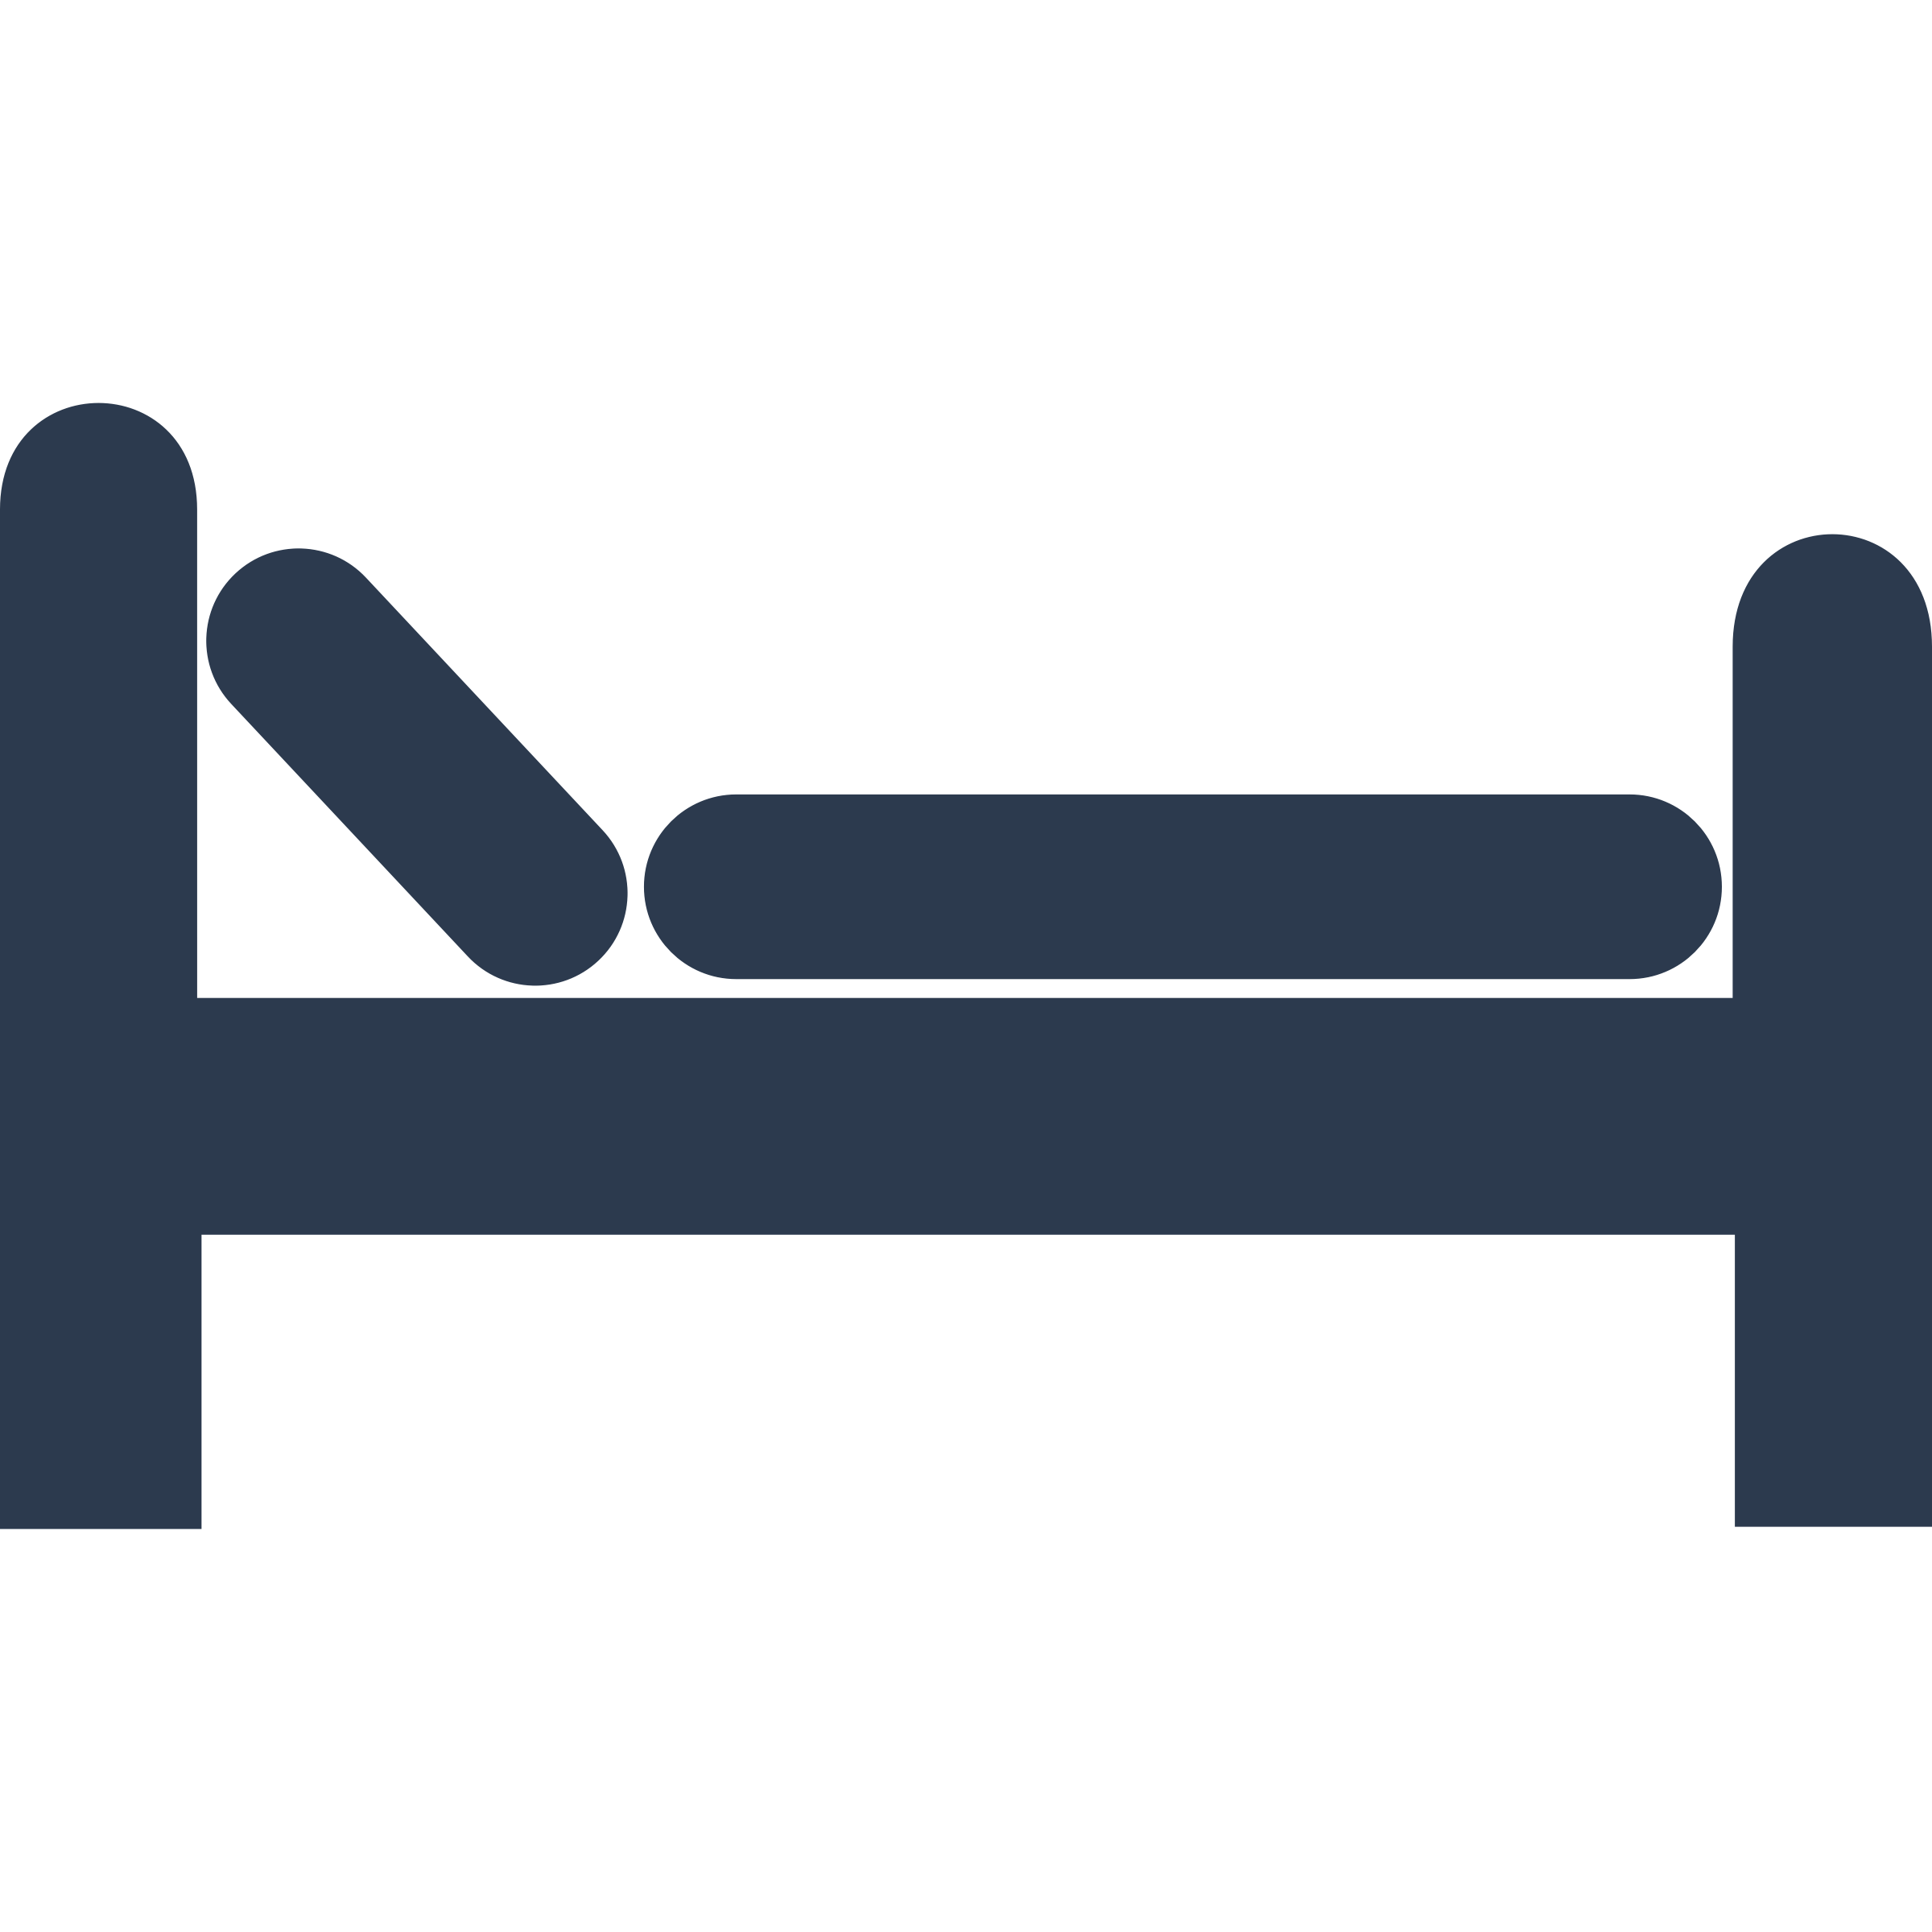 jpg freeuse download Free image. Bed clipart simple.